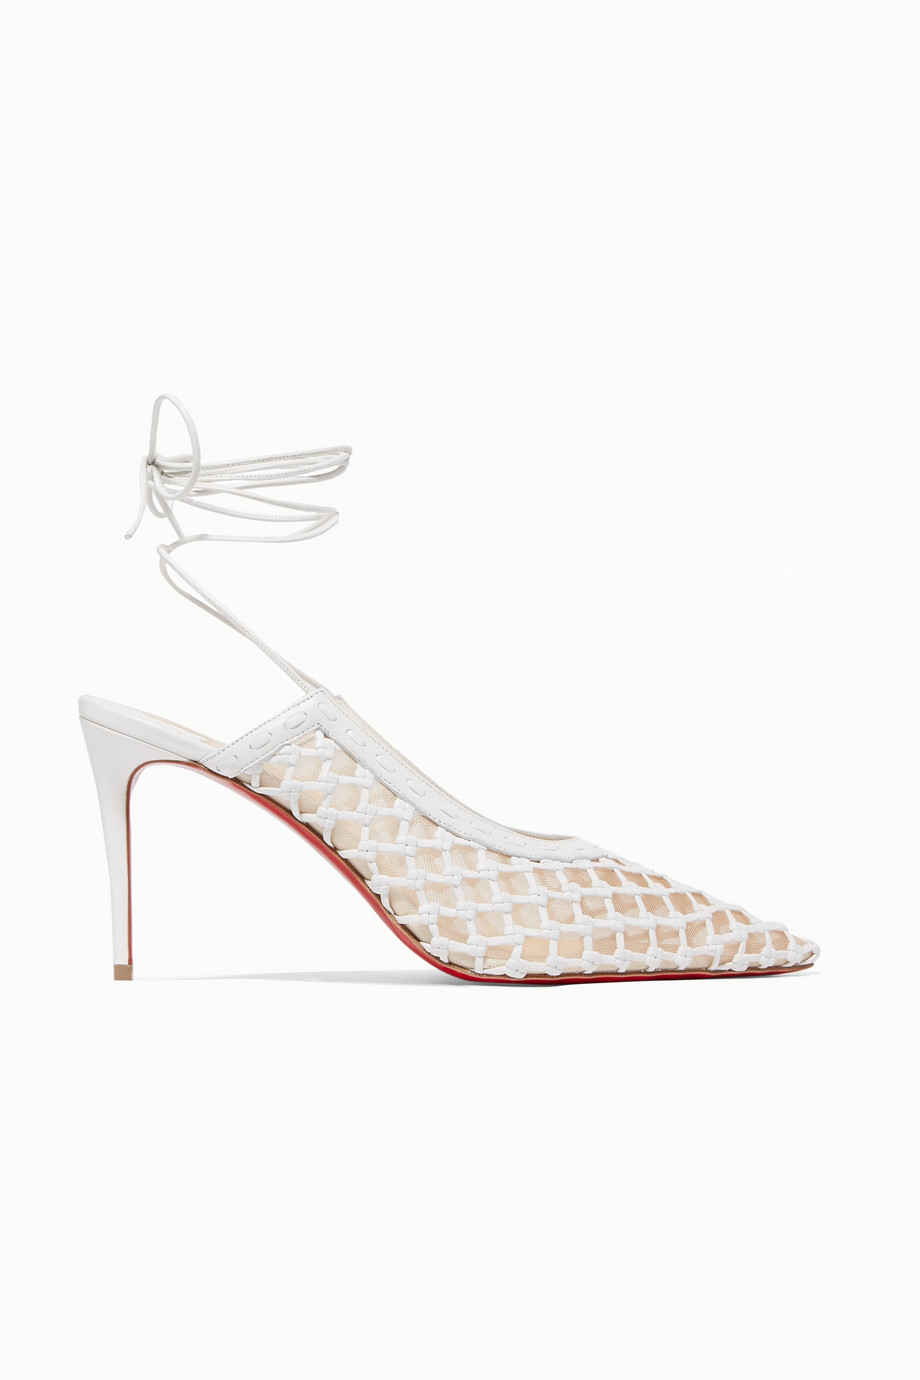 + Roland Mouret Cage and Curry 85 mesh and woven leather pumps by Net-a-porter, available on net-a-porter.com for $1095 Kylie Jenner Shoes SIMILAR PRODUCT